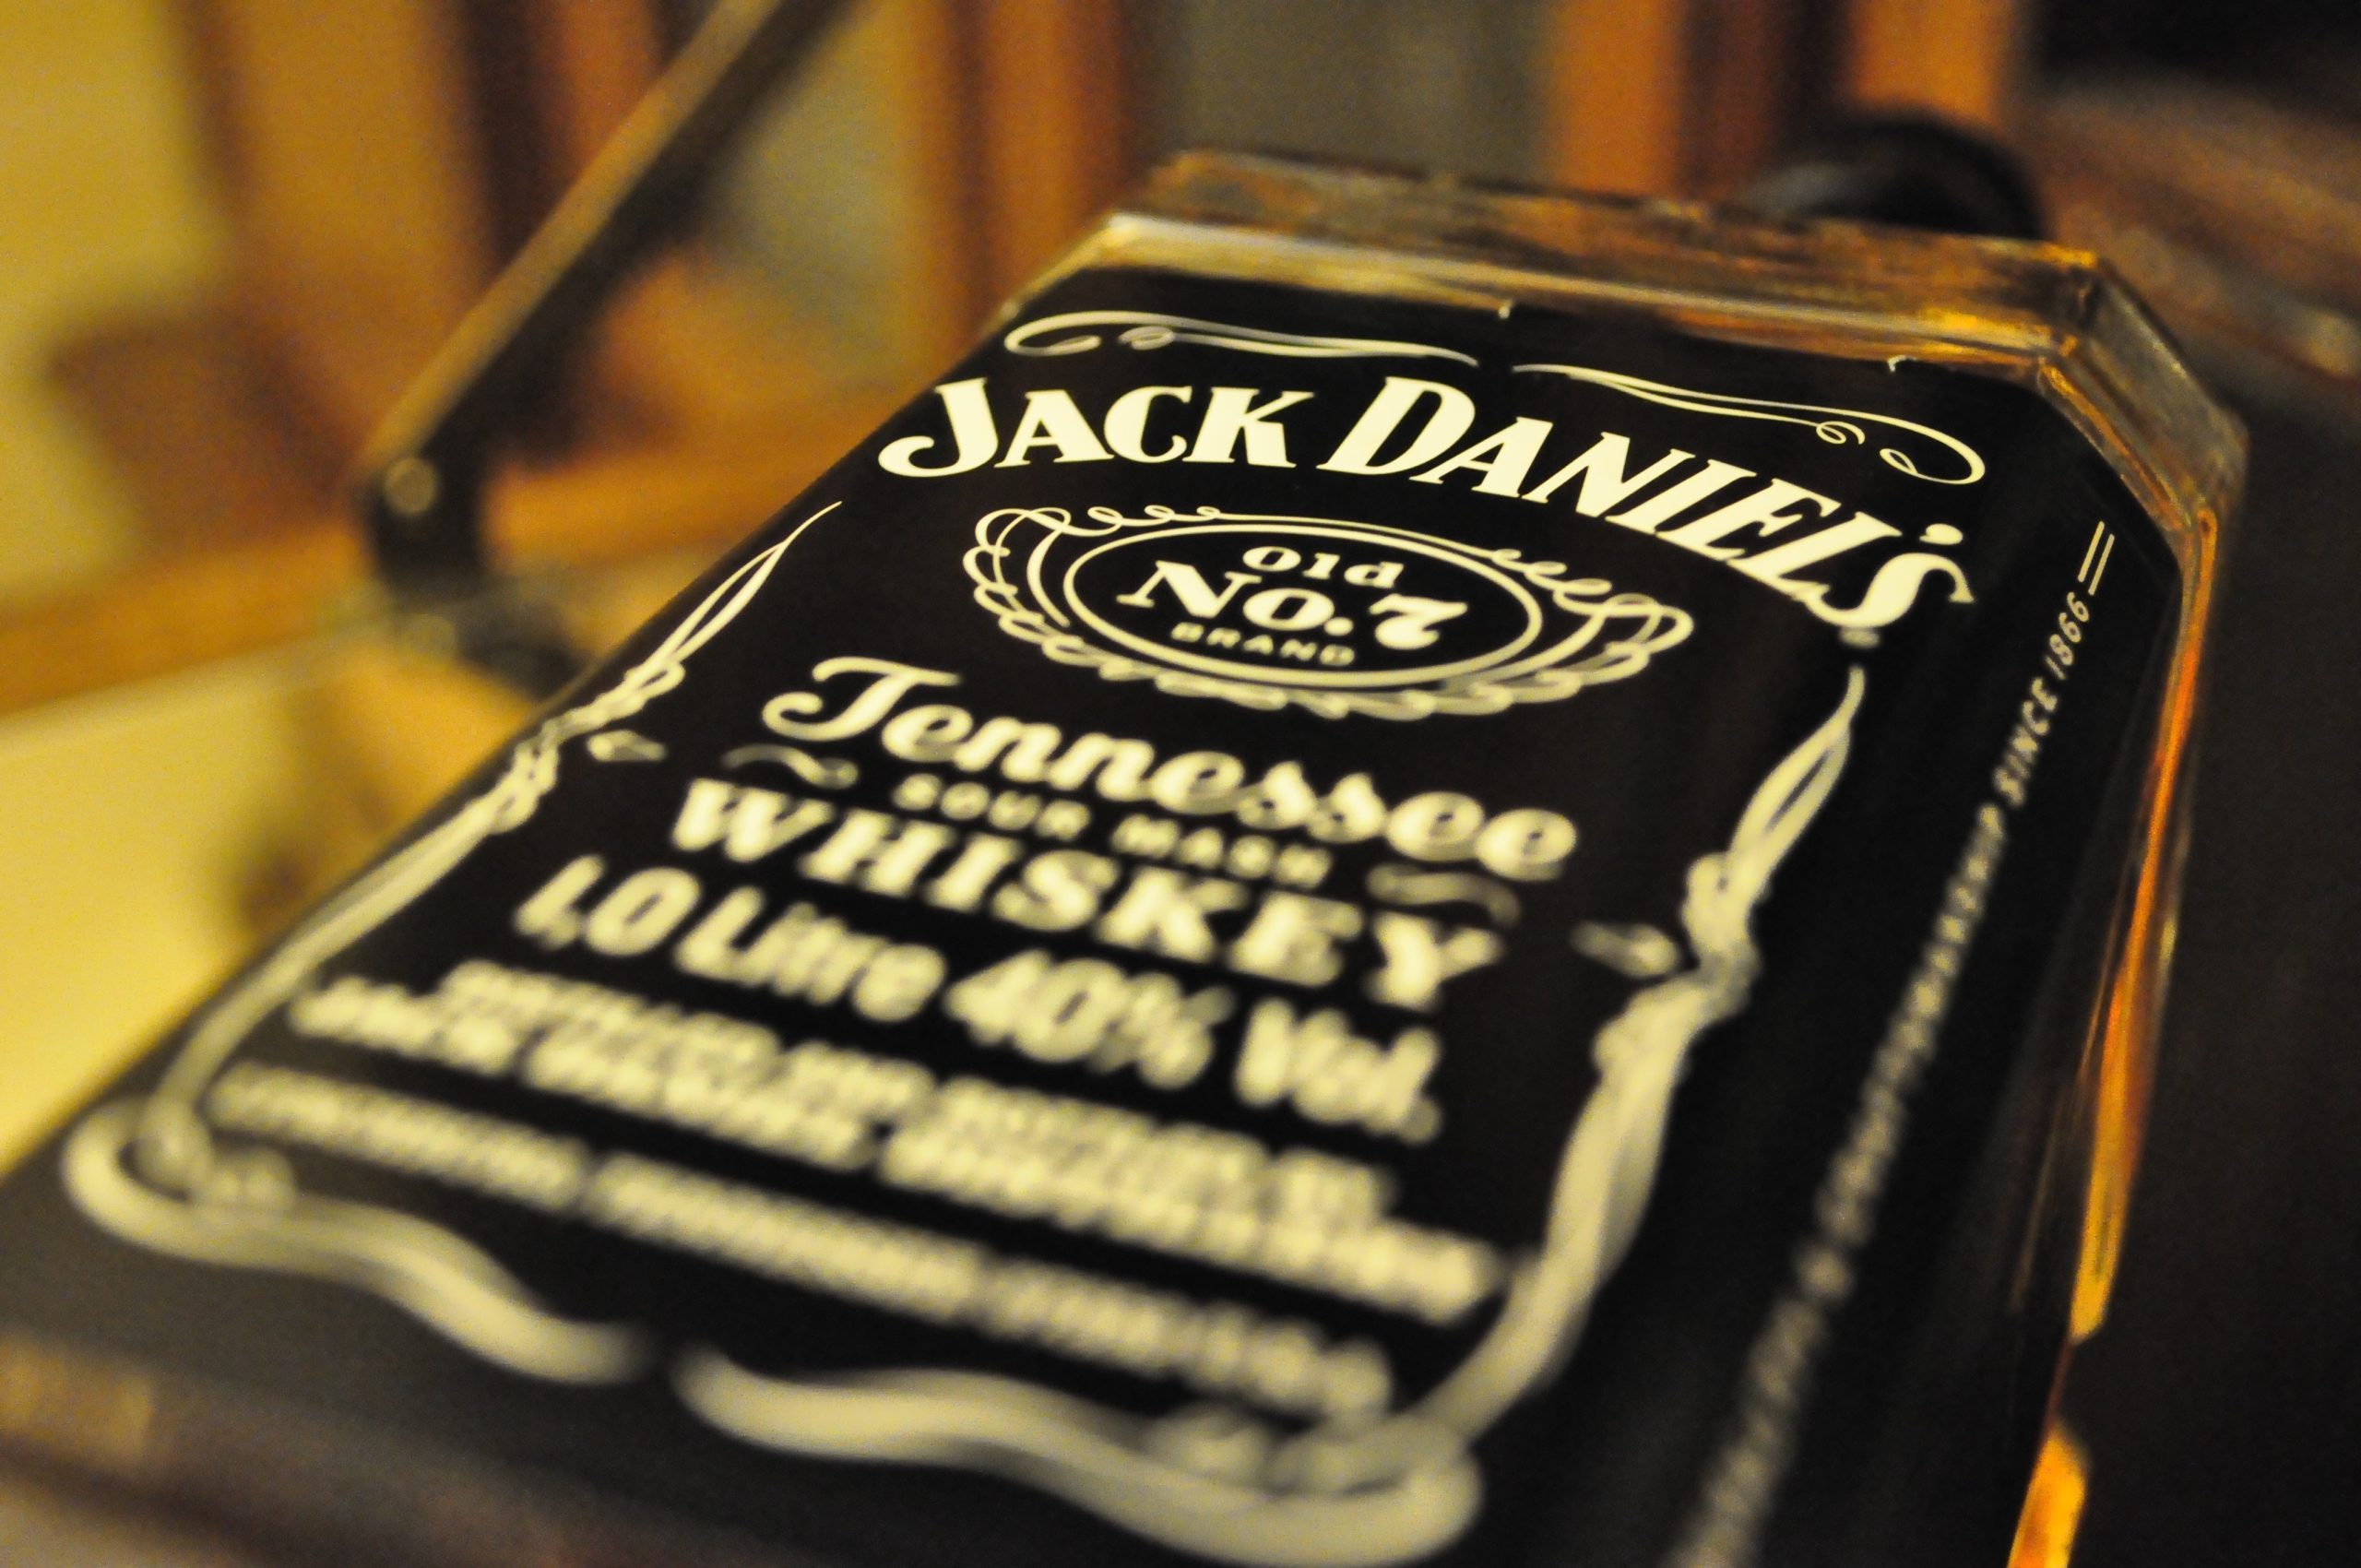 Jack Daniel's Whiskey Alcohol Bottle Macro wallpaper | 2560x1700